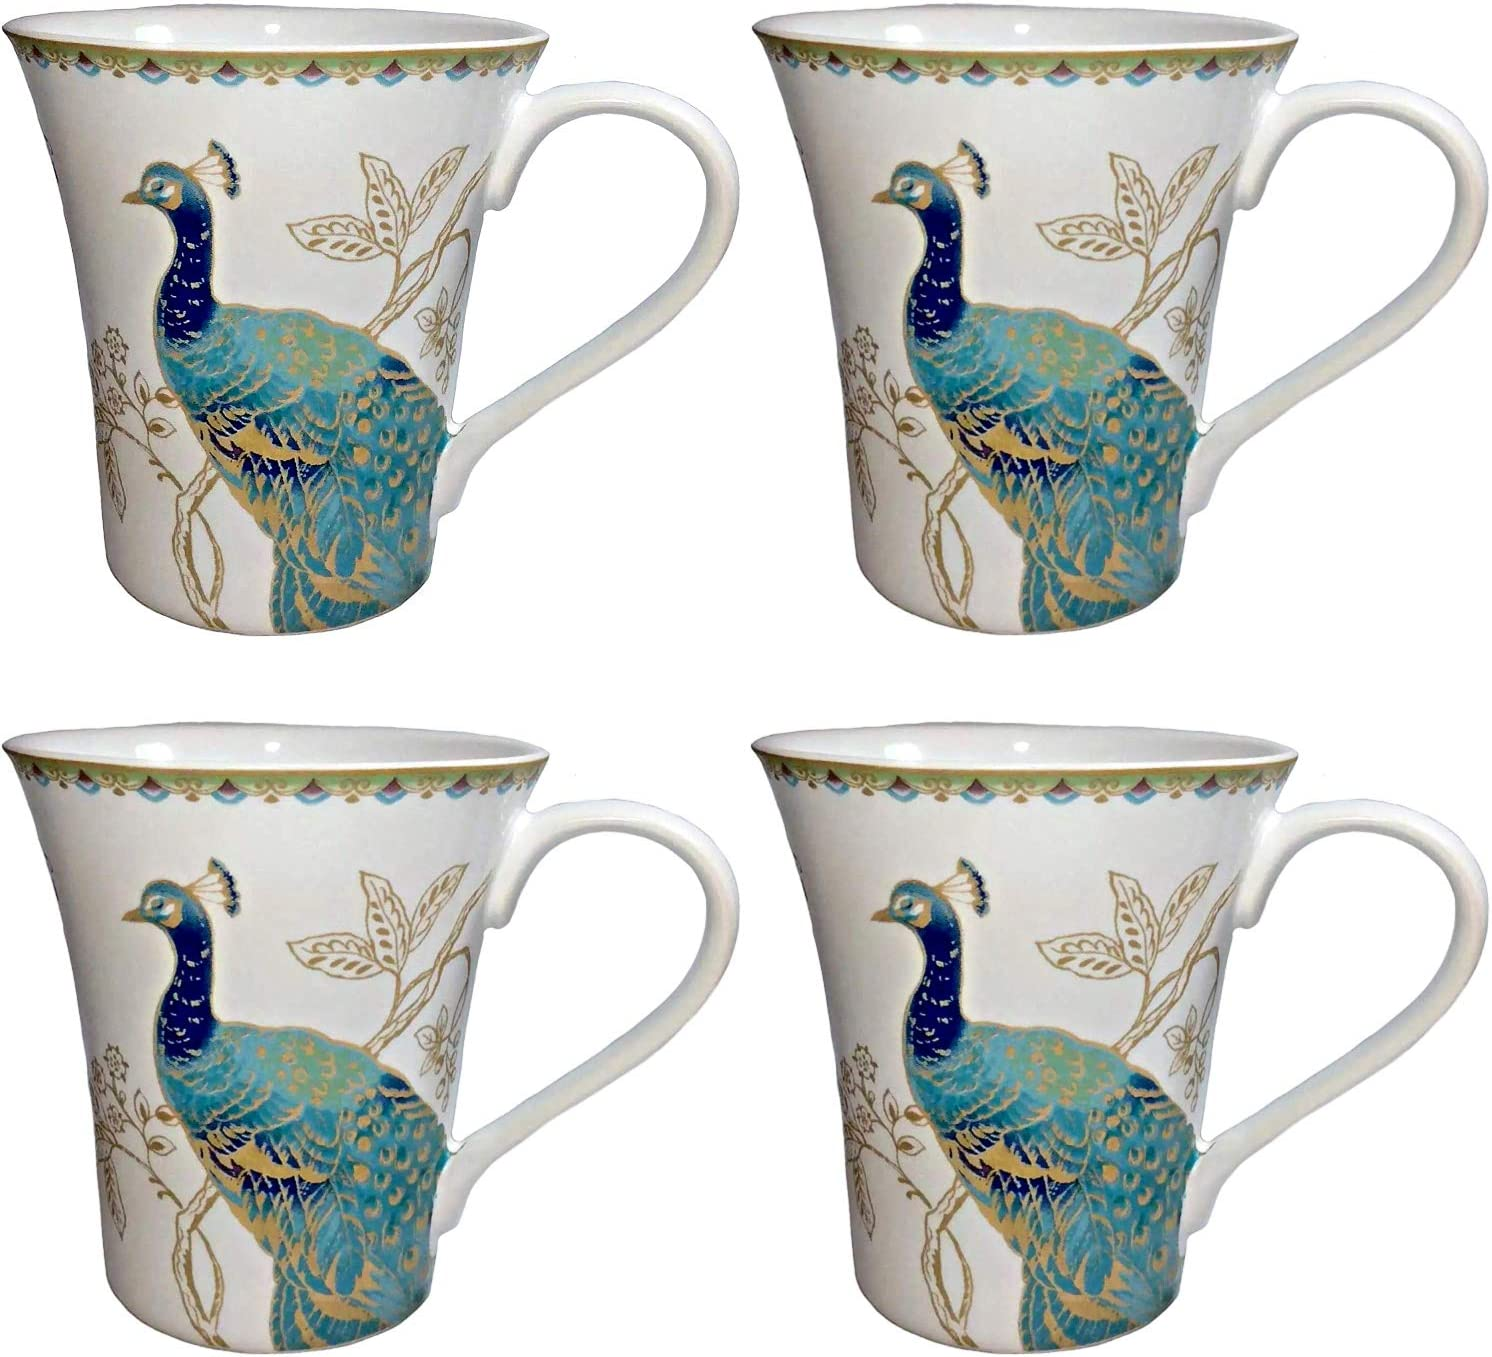 222 Fifth Peacock Garden Fine Porcelain Coffee Mugs | Set of 4